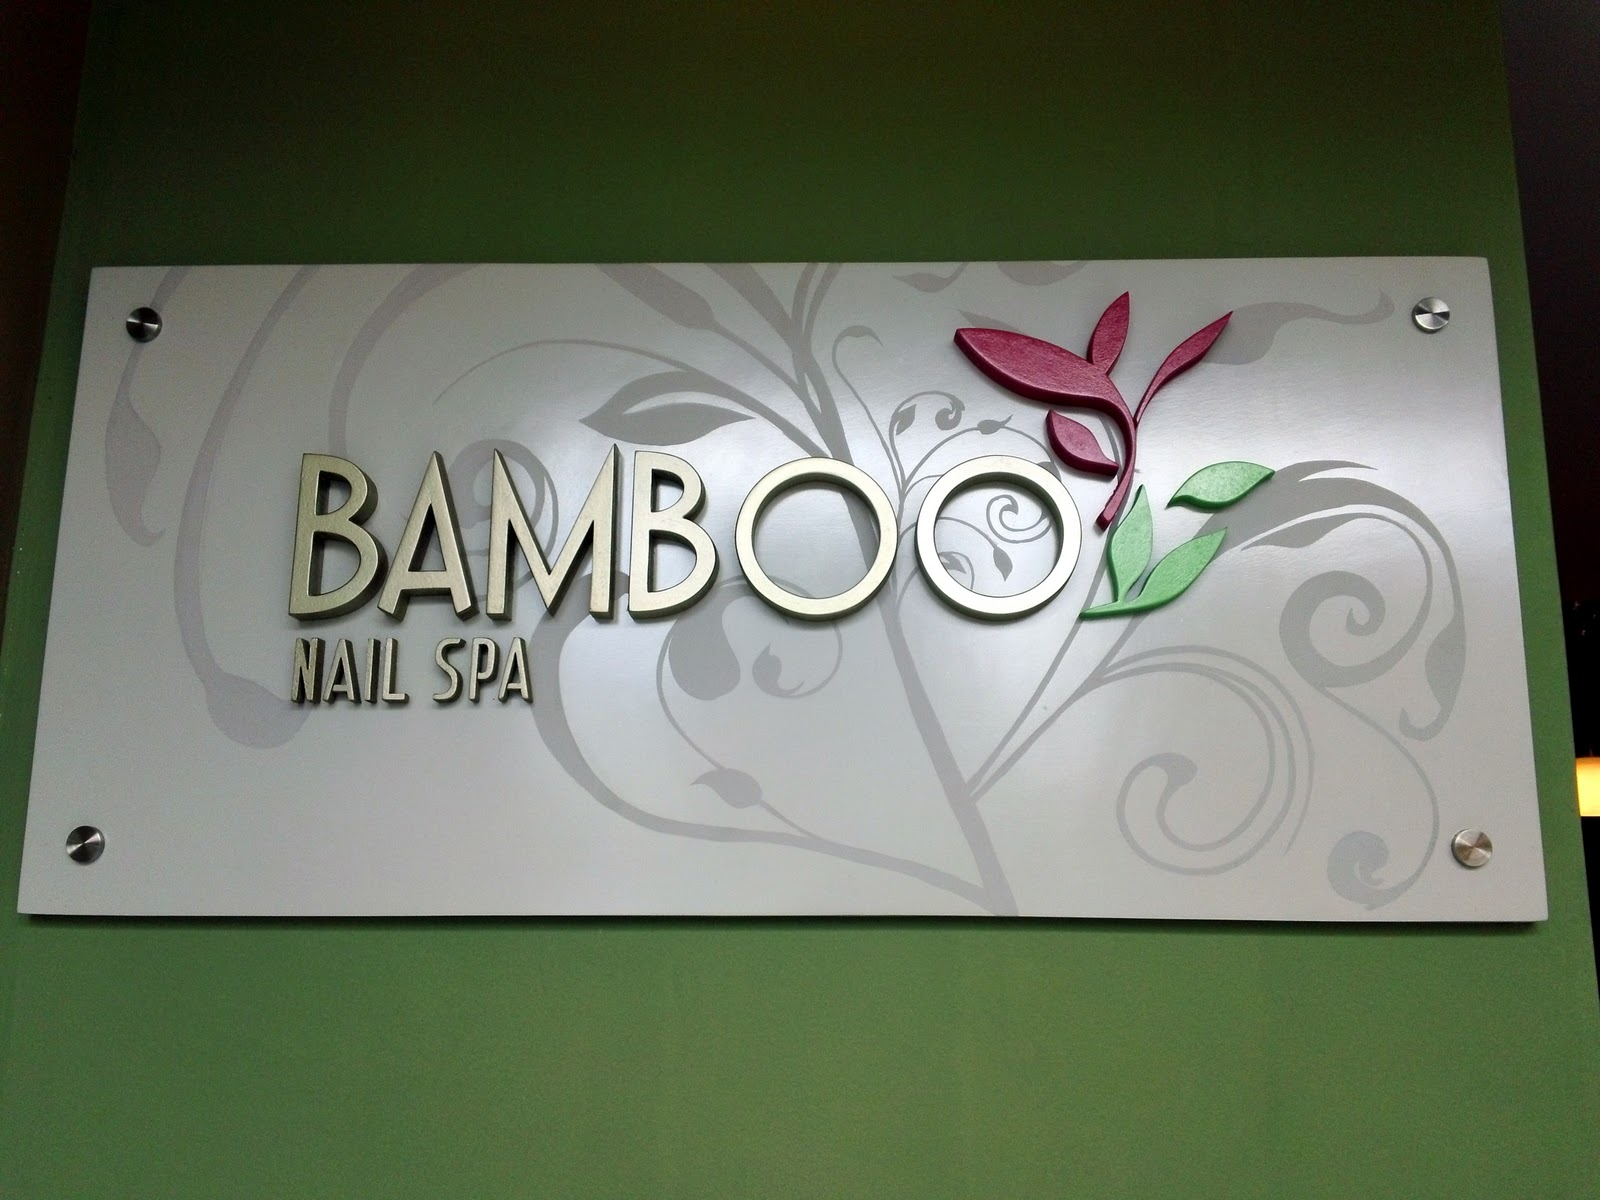 bamboo spa logo - photo #14